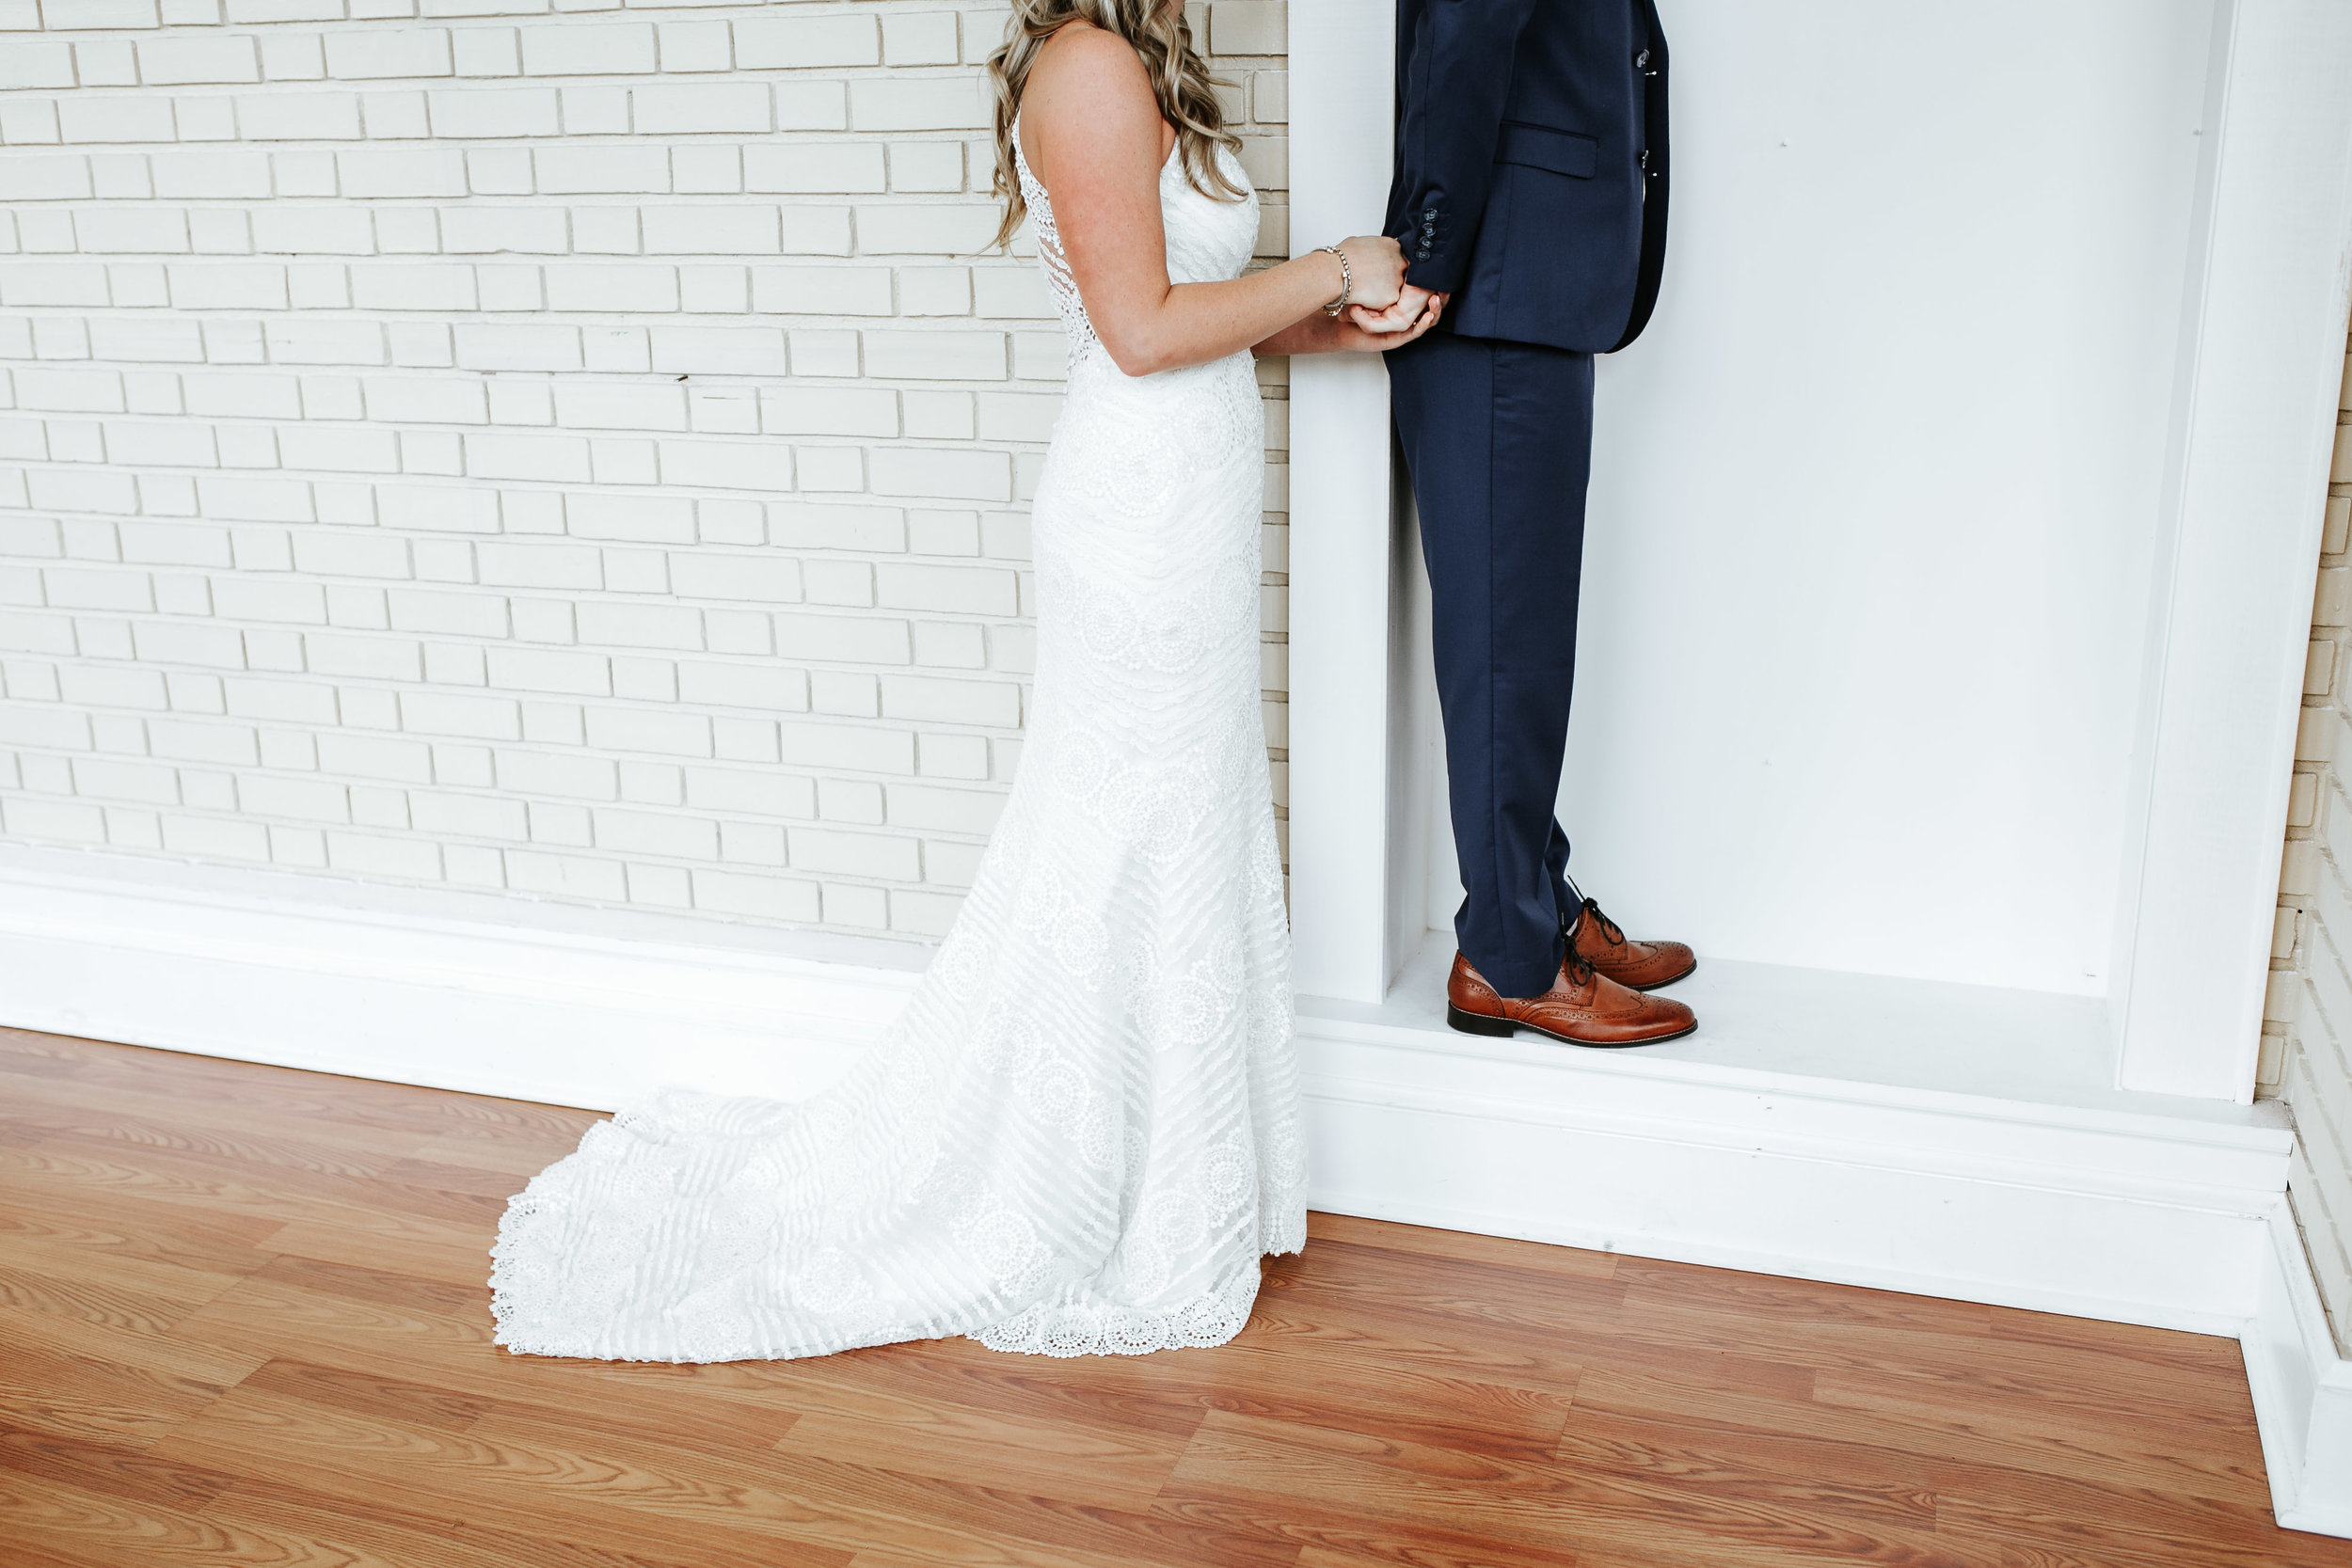 michellebrandonwedding-20.jpg